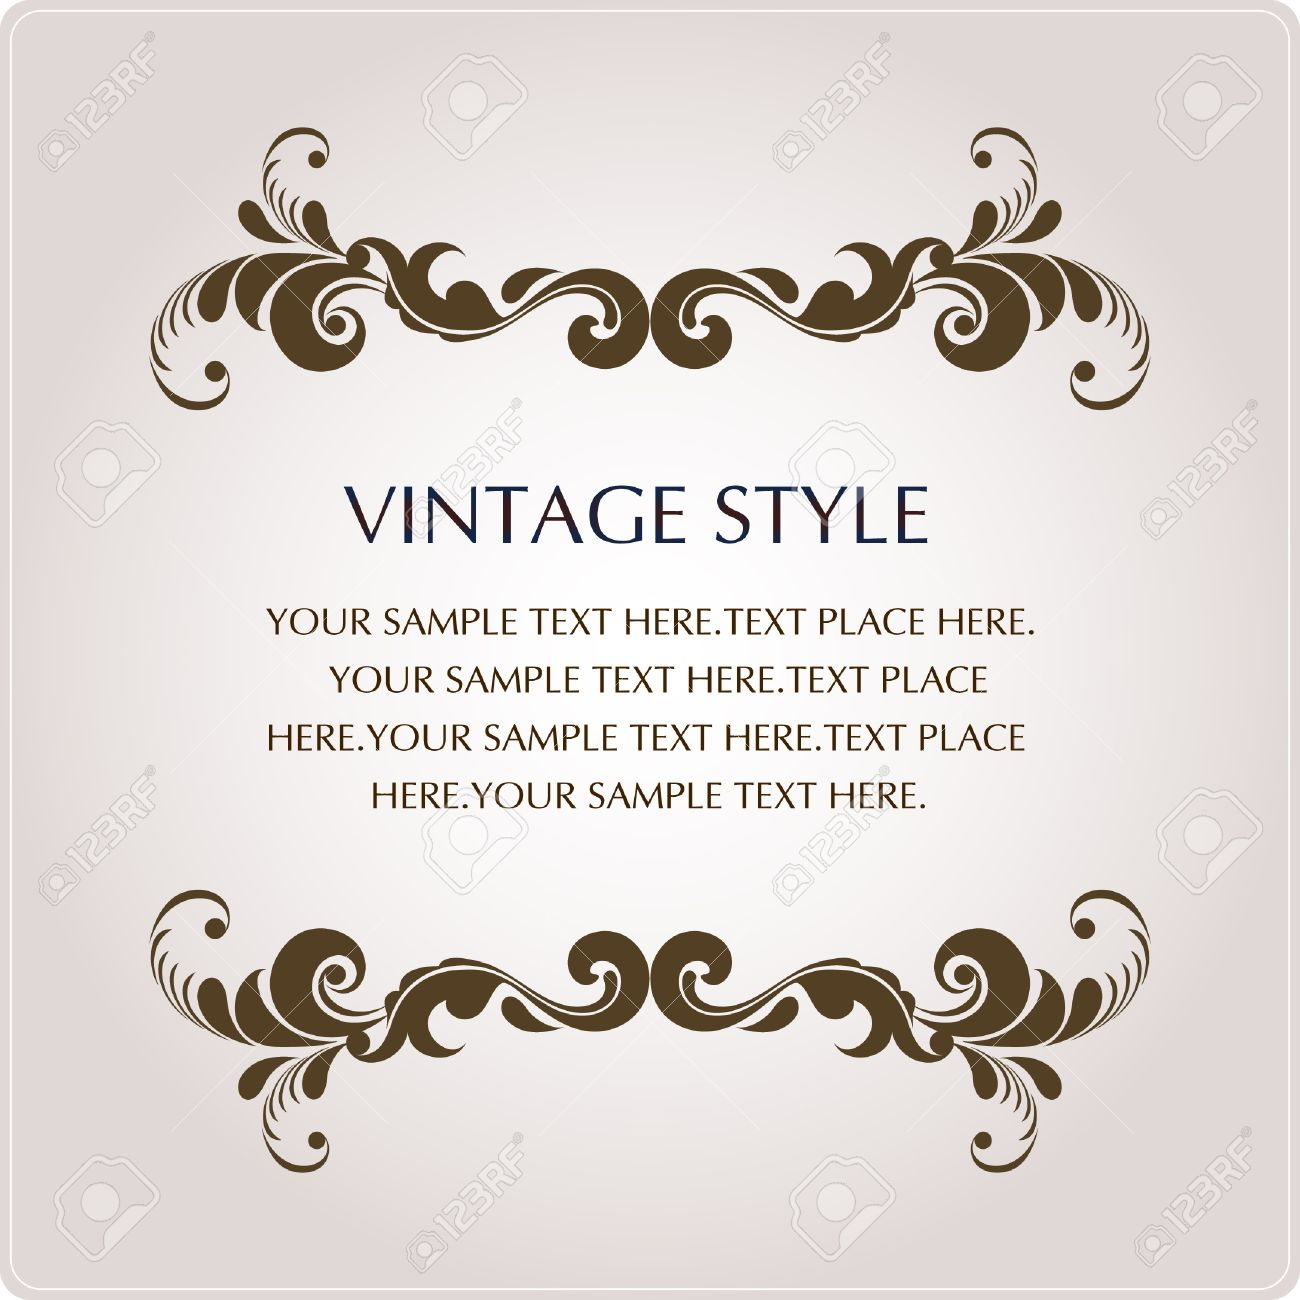 vintage style Stock Vector - 4421527